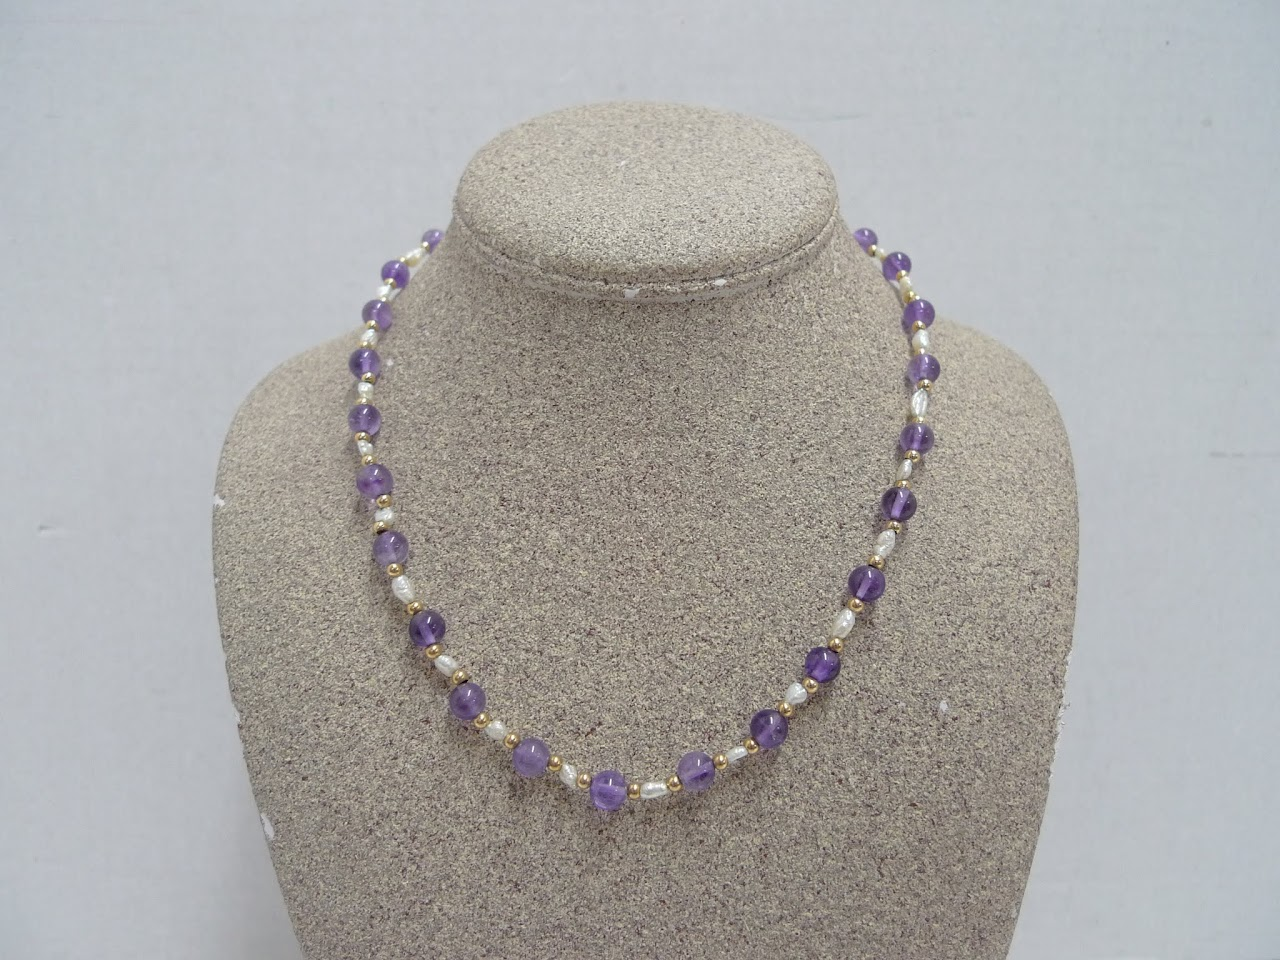 14K Gold, Pearl, and Amethyst Necklace